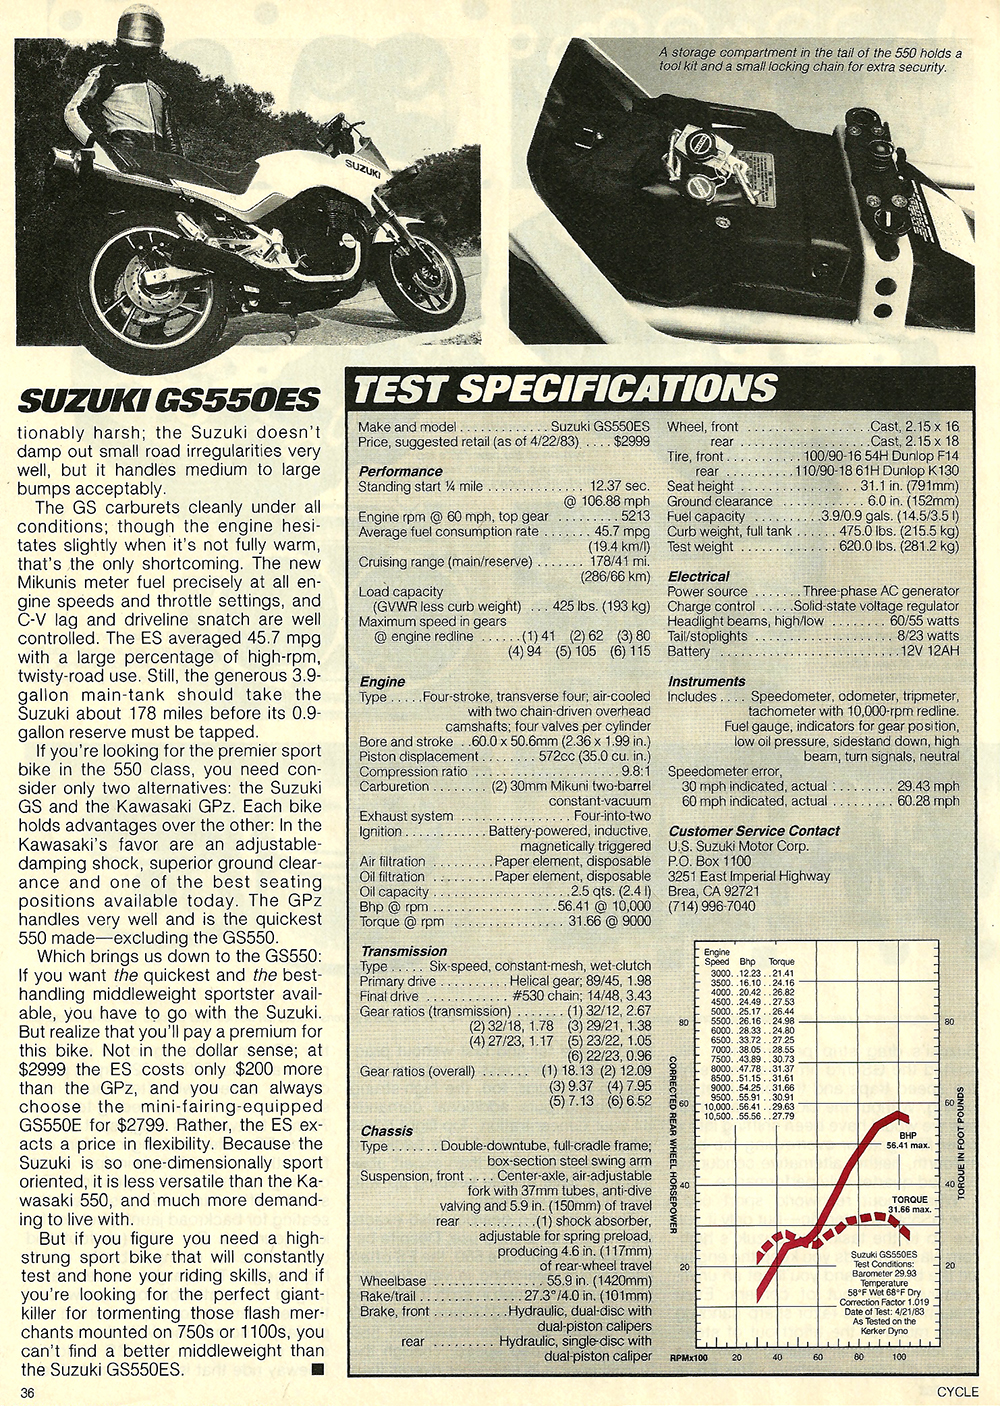 1983 Suzuki GS550ES road test 7.jpg